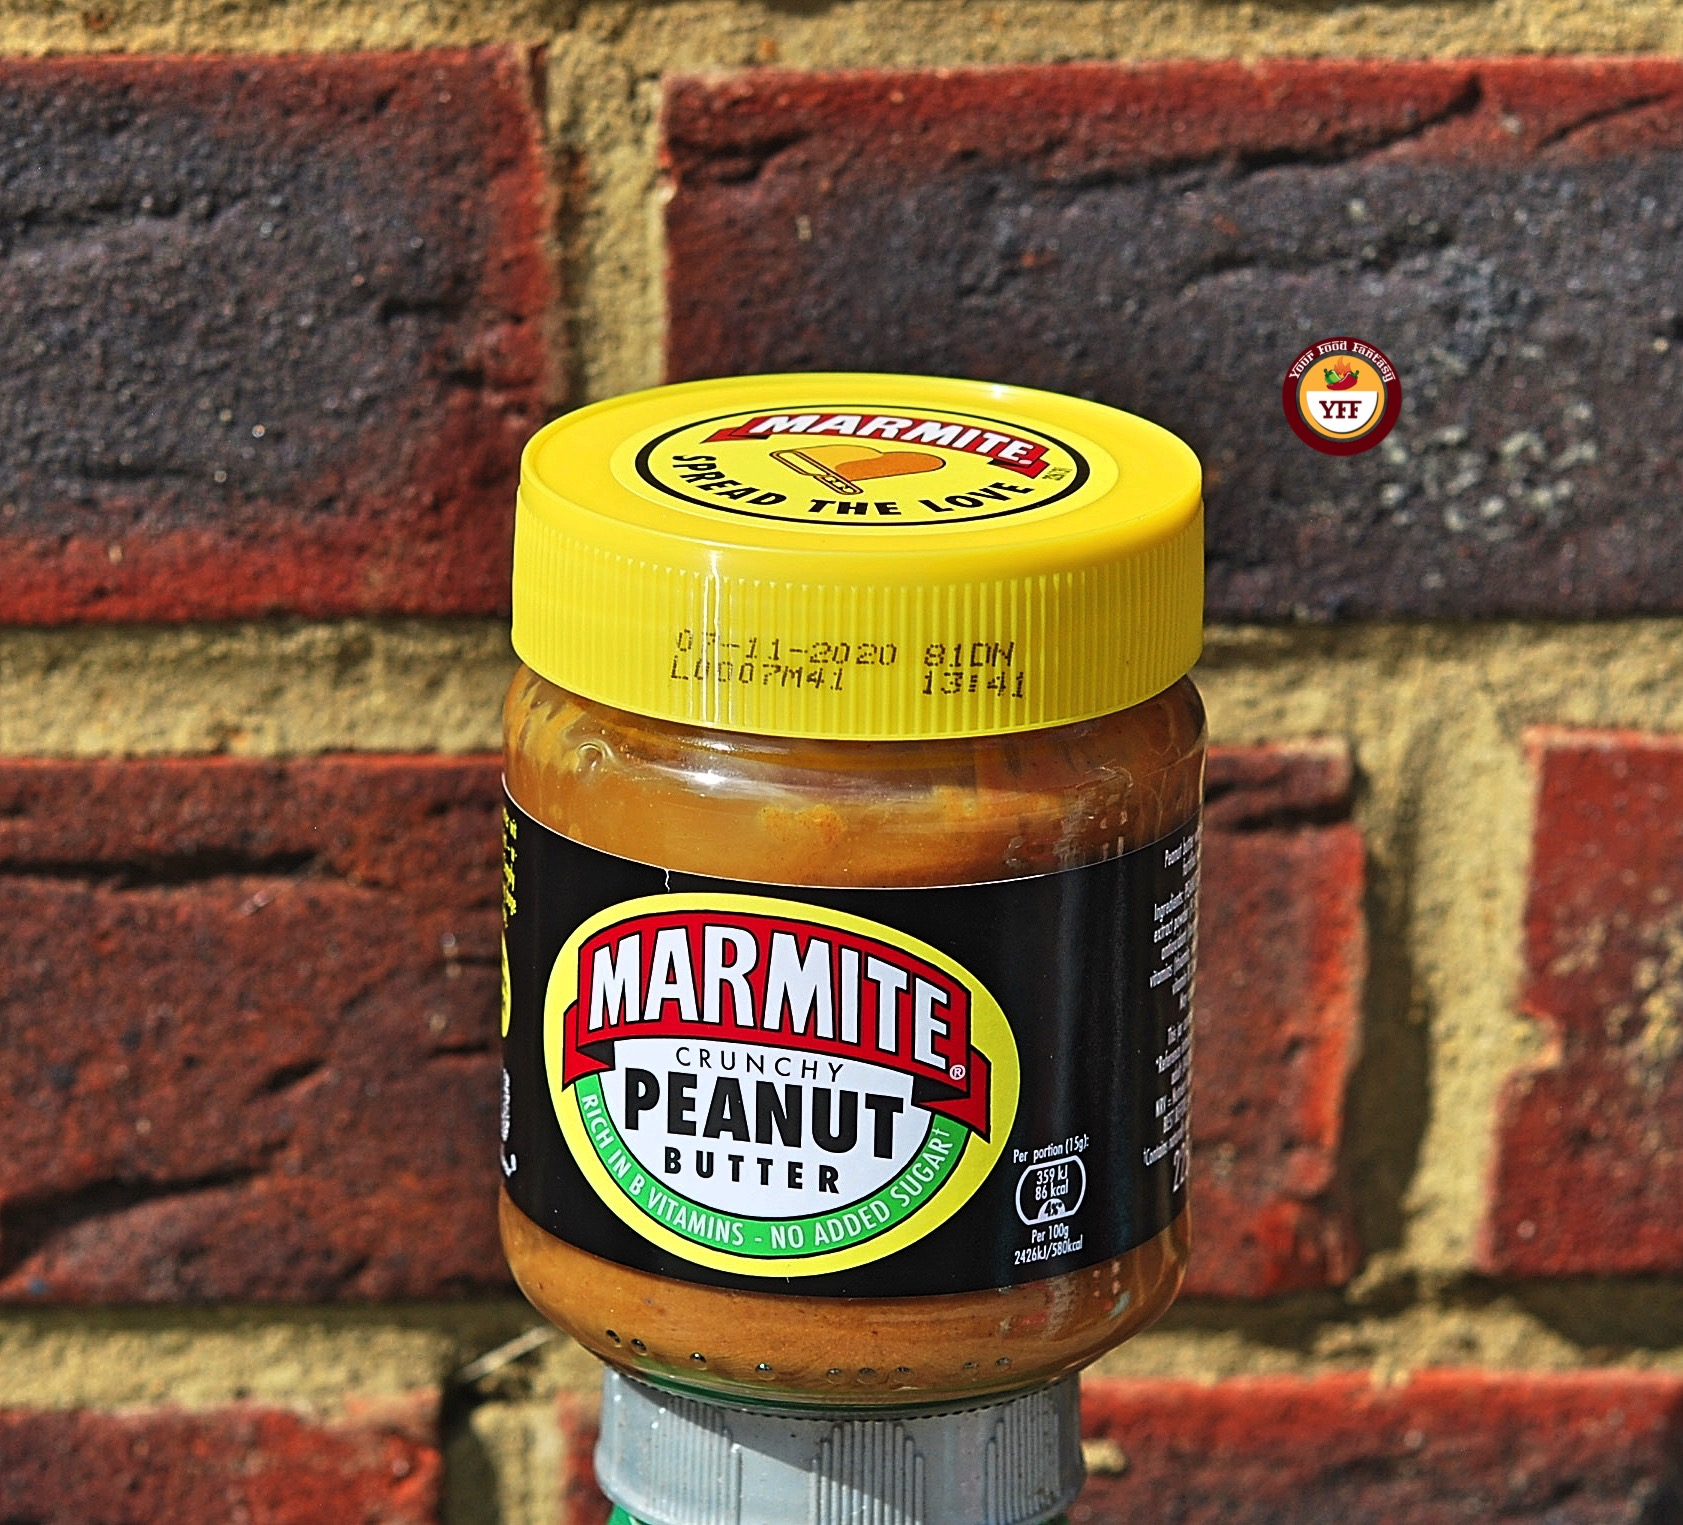 Marmite Peanut Butter Review | YourFoodfantasy.com